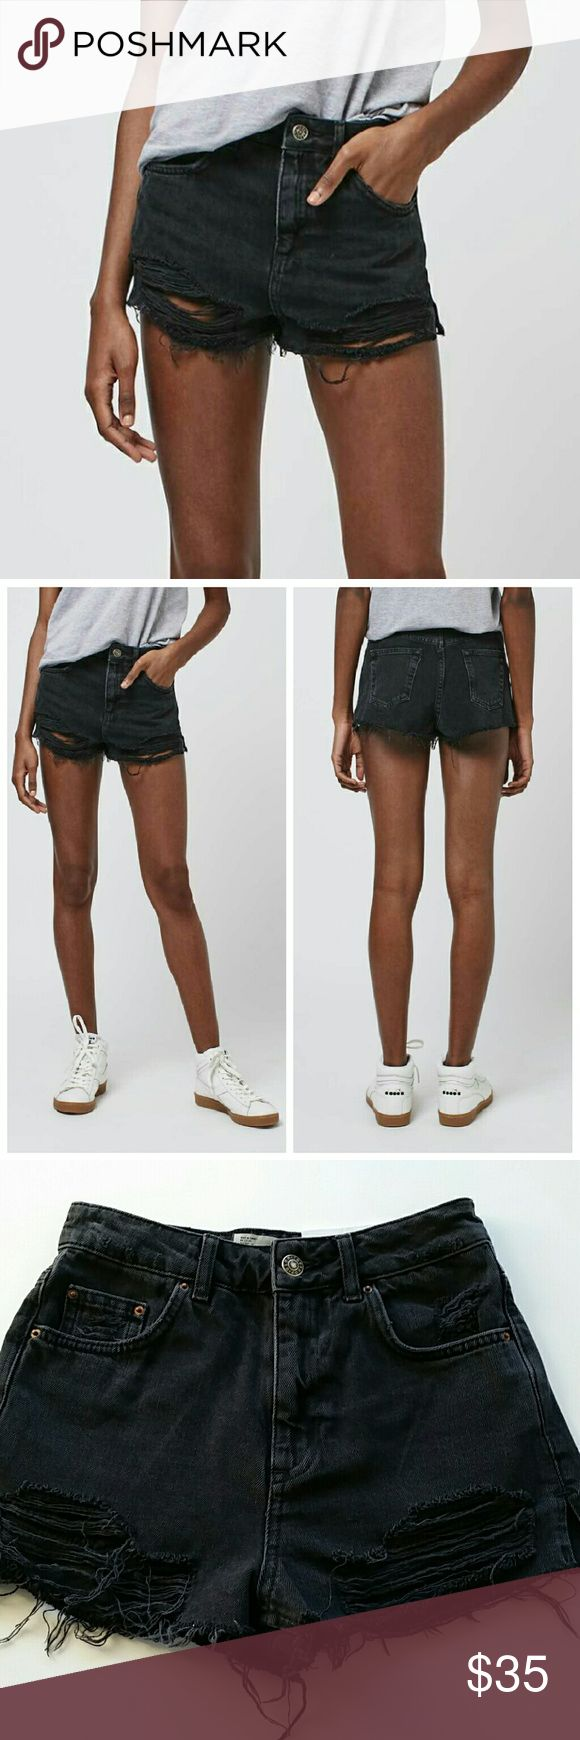 "Topshop Moto High Waisted Ripped Mom Jean Shorts Topshop moto high waisted mom shorts  *US 4 but runs small and fits more like 0-2. Therefore labeled as size 0. Please check measurements. *Waist : 12.5"" flat / Inseam : 1.5""  *Slightly washed out black color *Distressed/Ripped  *New with tags *No trade Topshop Shorts Jean Shorts"